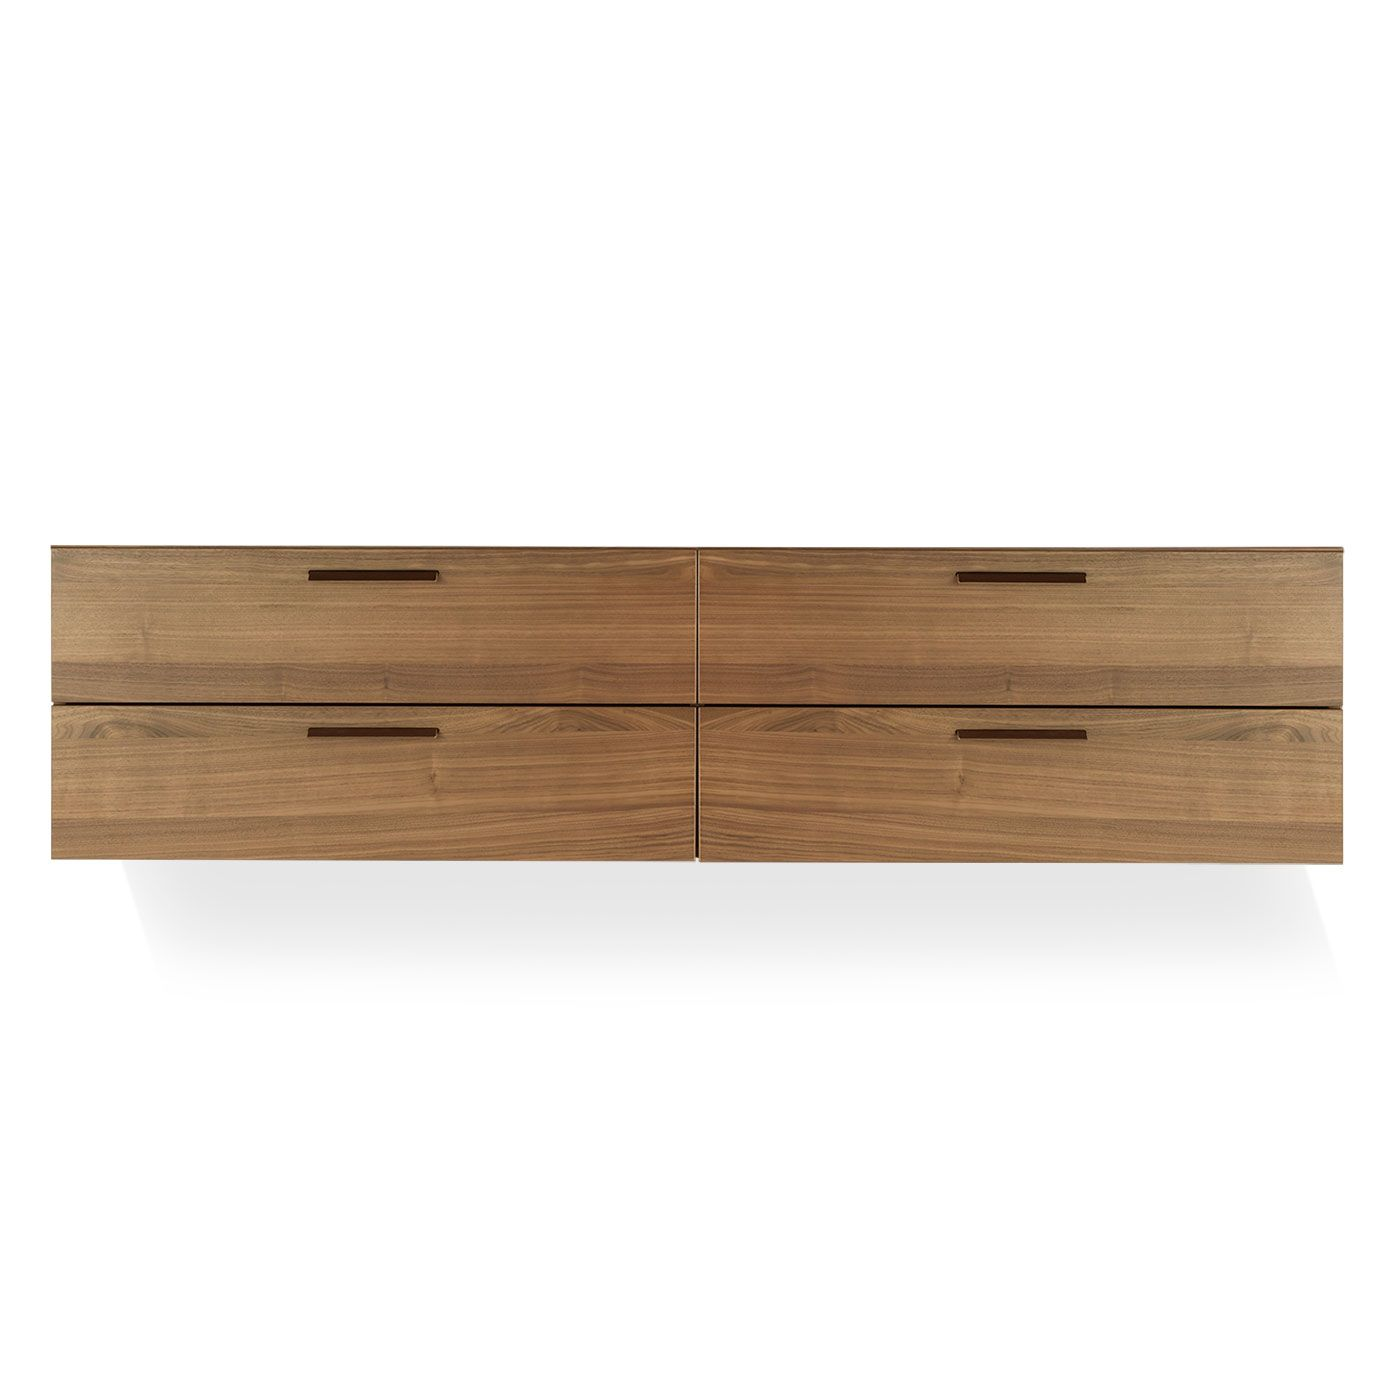 Shale 4 Drawer Wall Mounted Cabinet Wall Mounted Cabinet Wooden Walls Modern Dresser